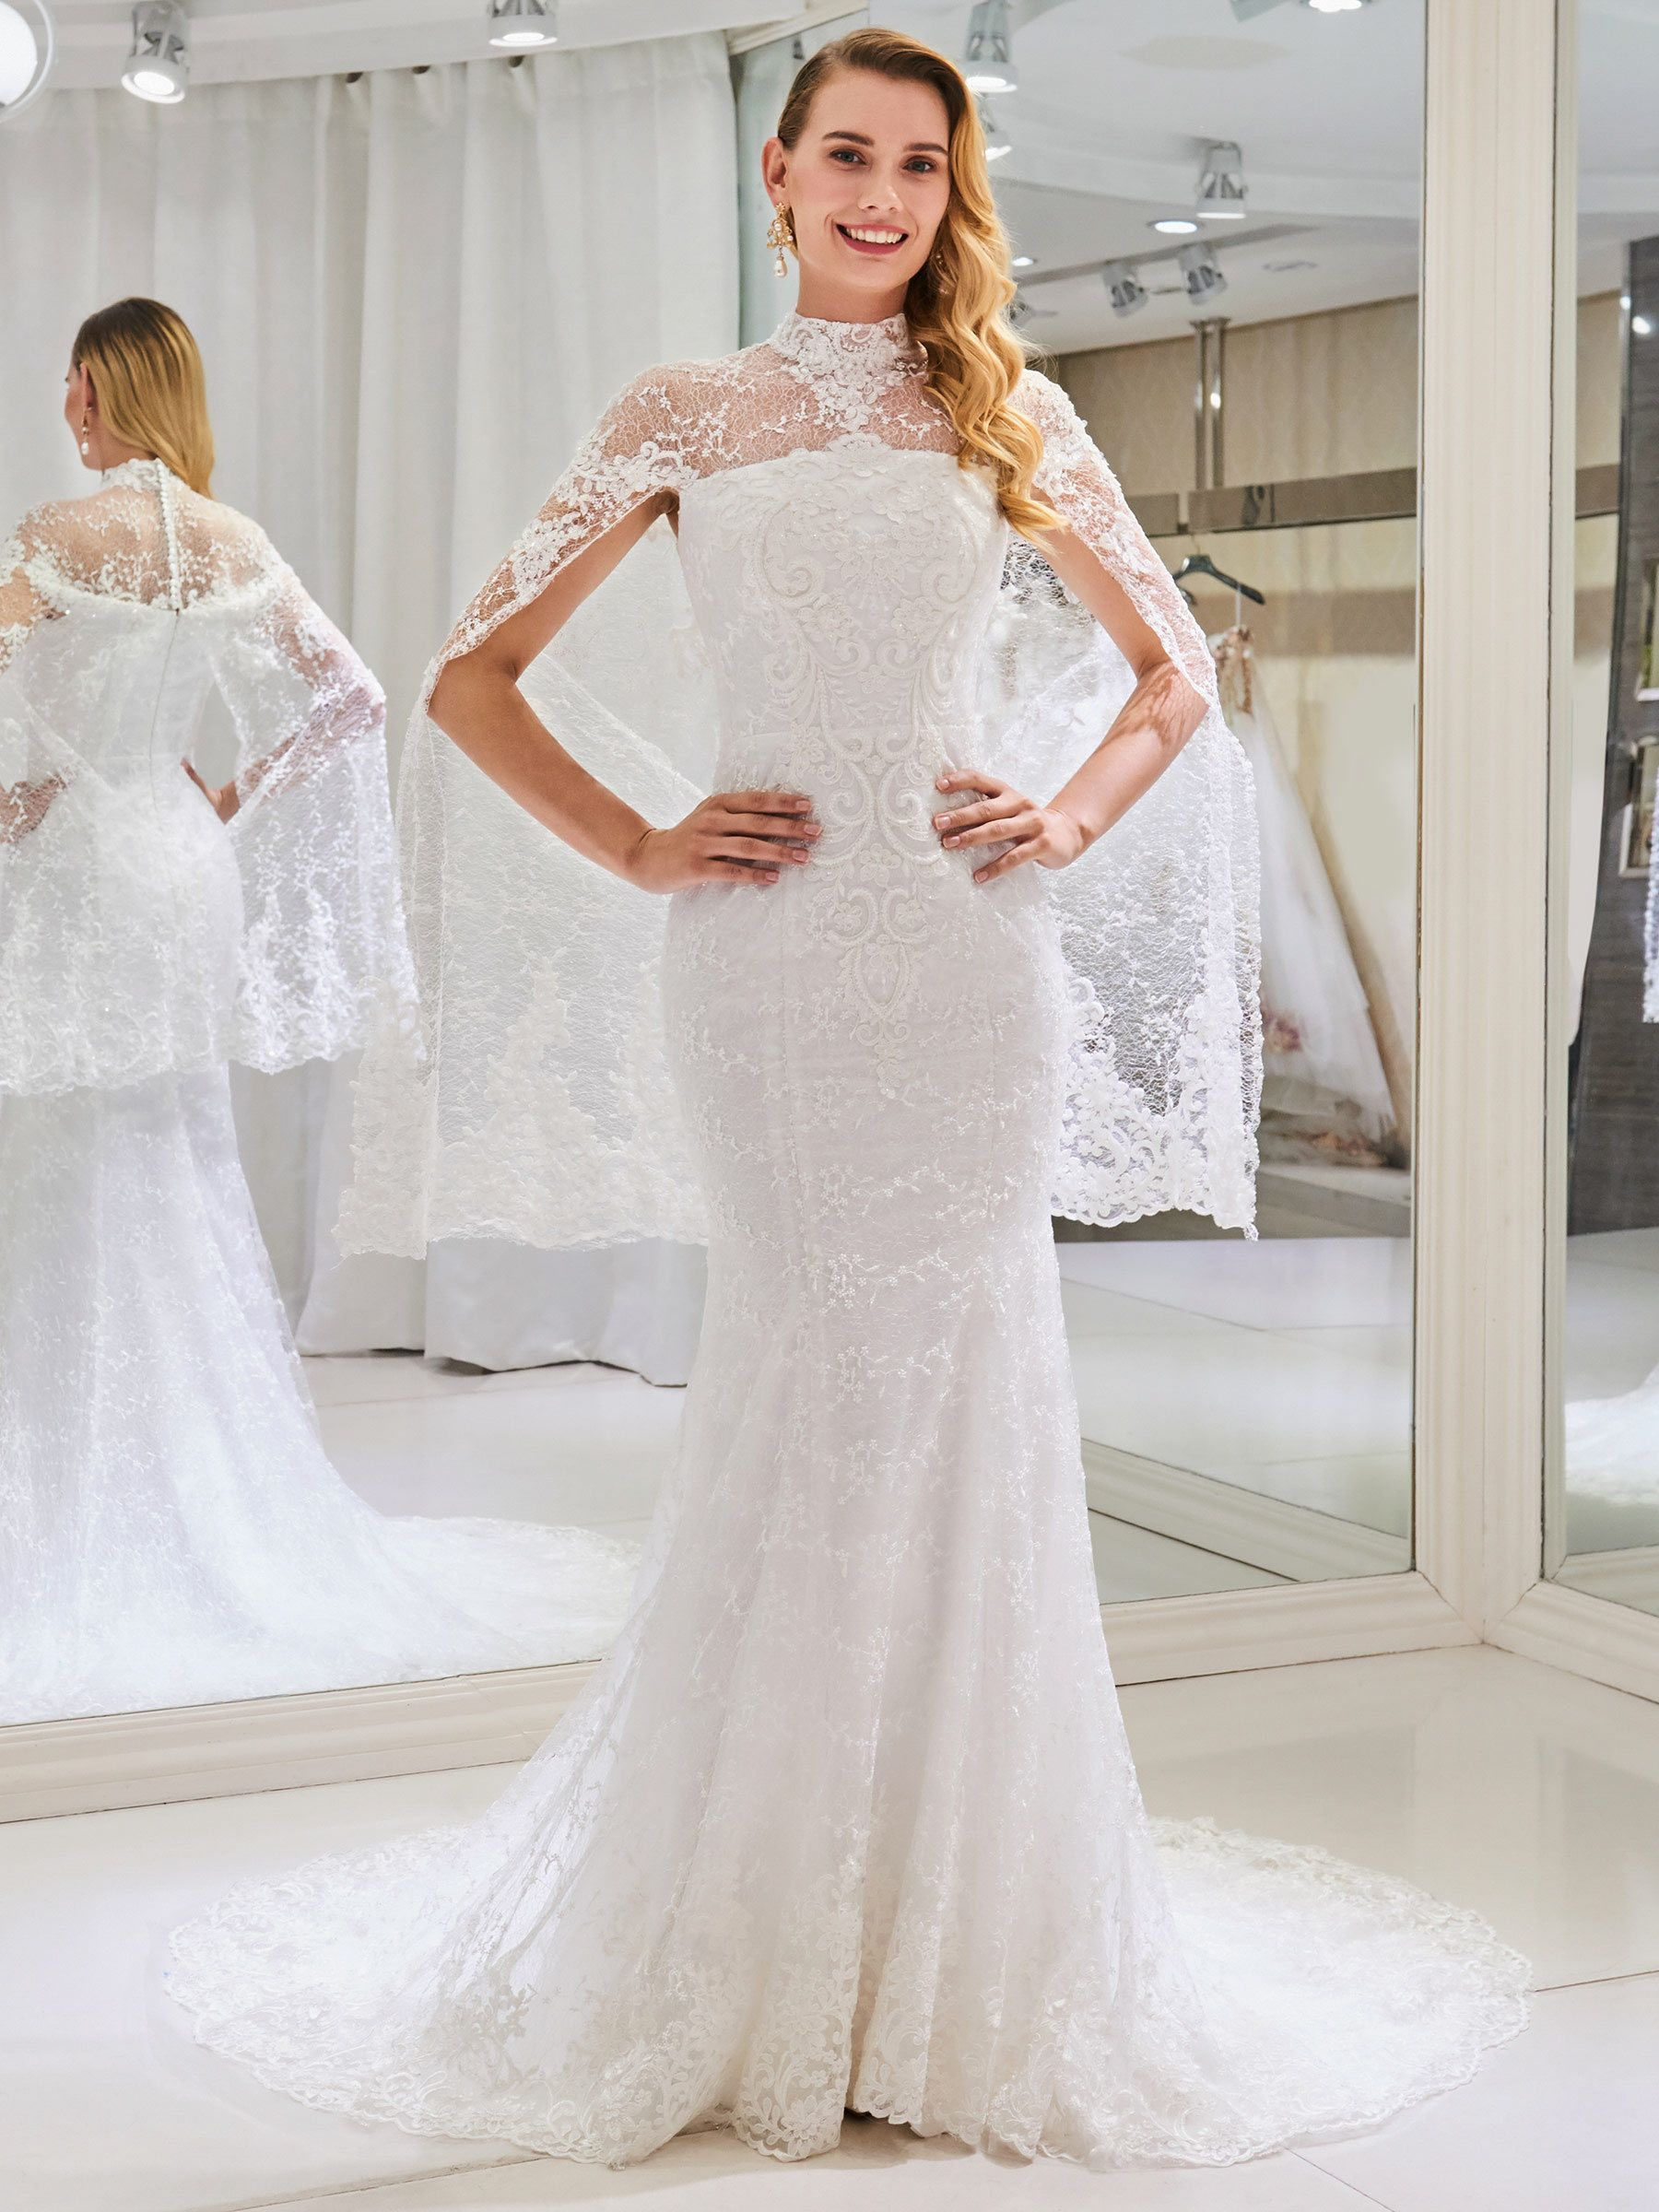 High Neck Mermaid Lace Wedding Dress With Shawl Wedding Dress Shawl Lace Mermaid Wedding Dress Dress With Shawl [ 2400 x 1800 Pixel ]